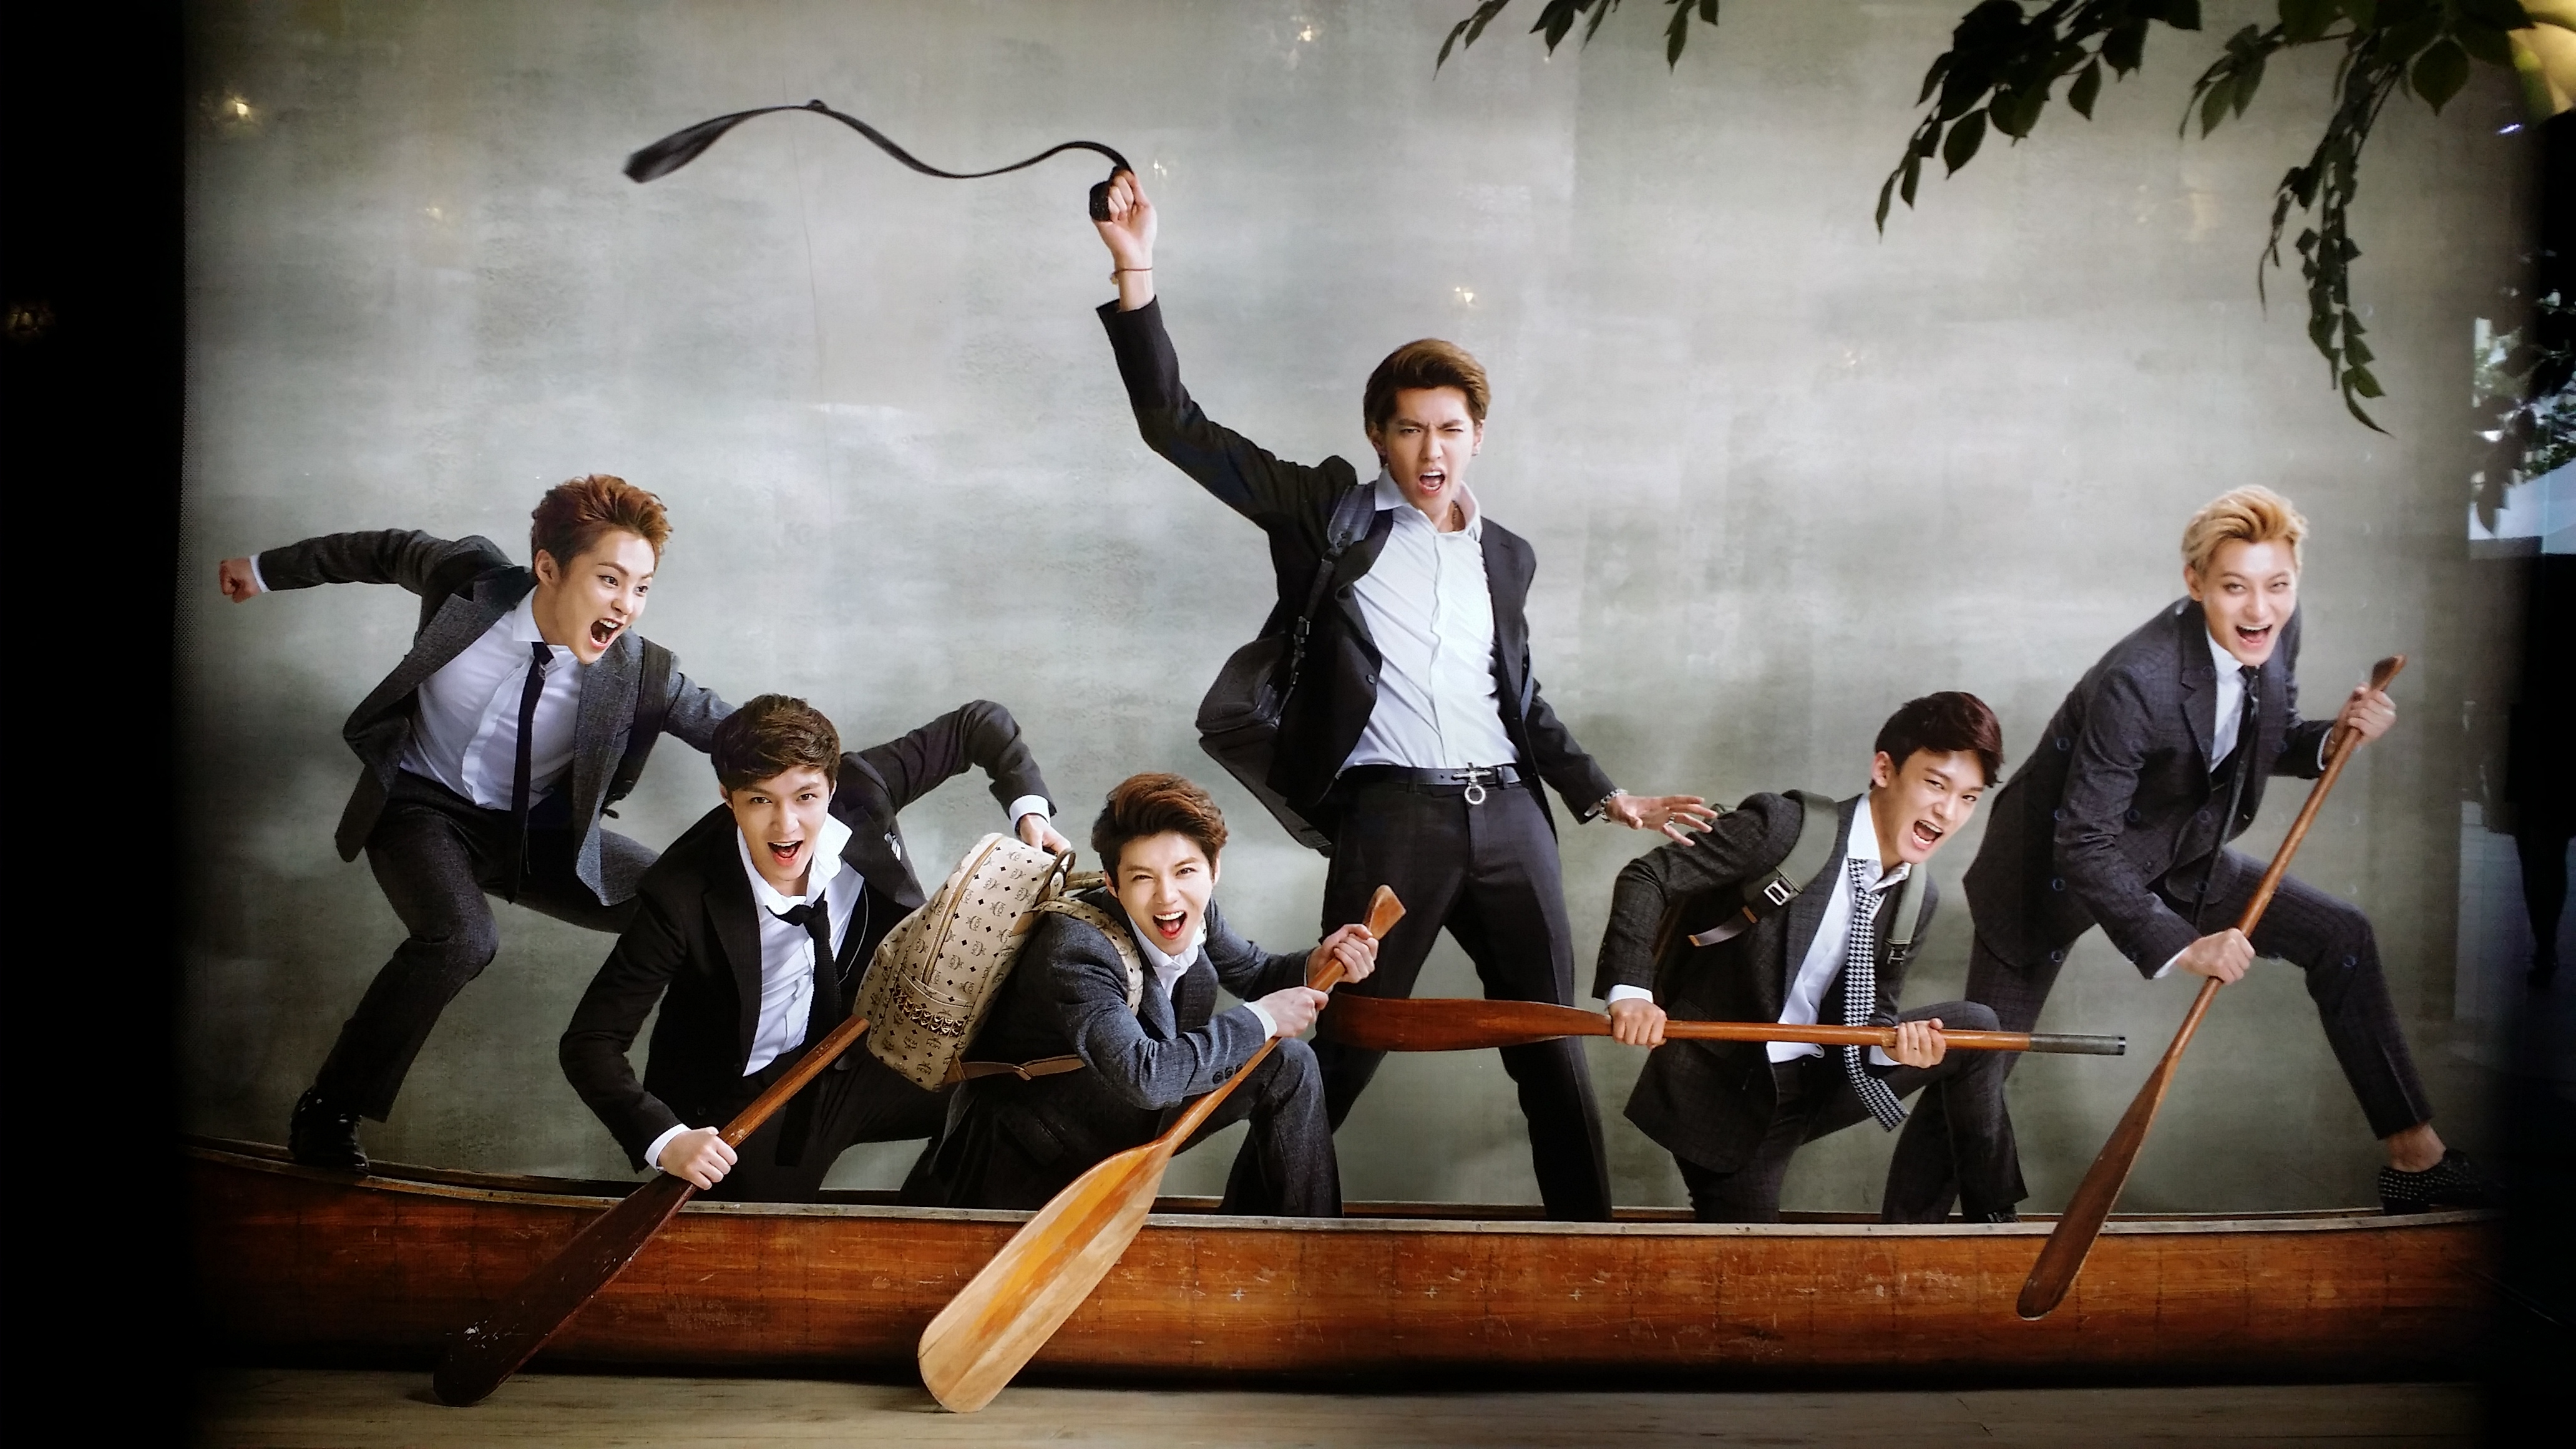 Exo Wallpapers, Pictures, Images